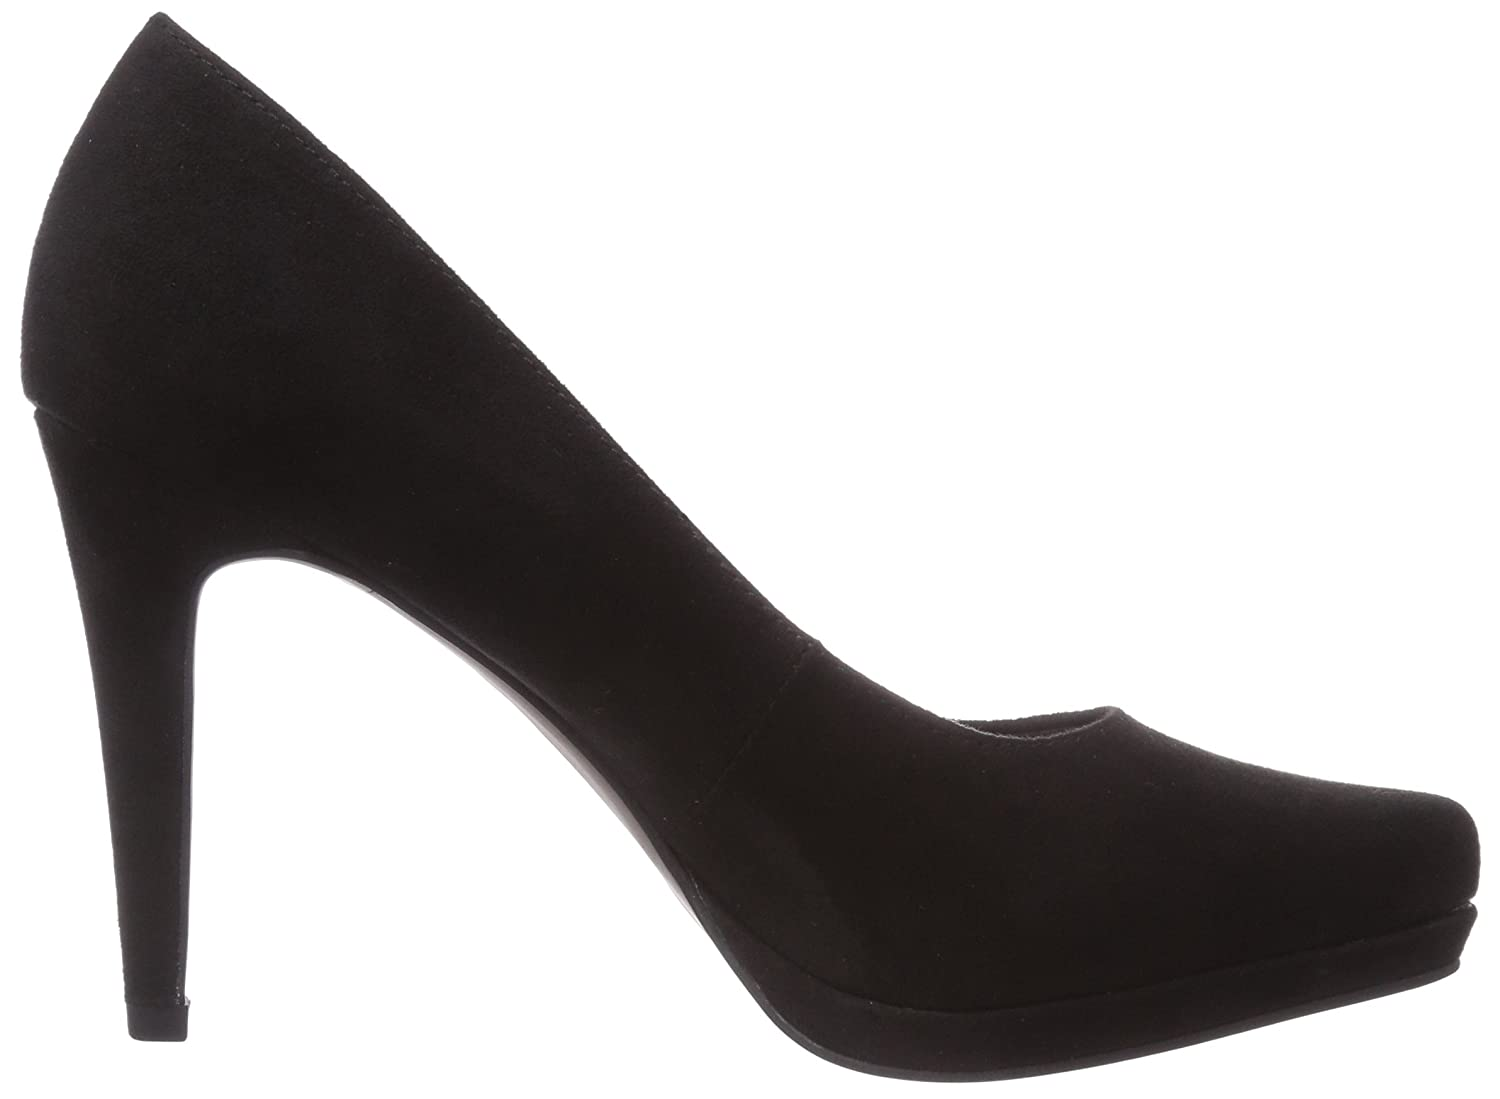 Tamaris 22446, Damen Pumps, Schwarz (Black 001), 40 EU (6.5 Damen UK):  Amazon.de: Schuhe & Handtaschen